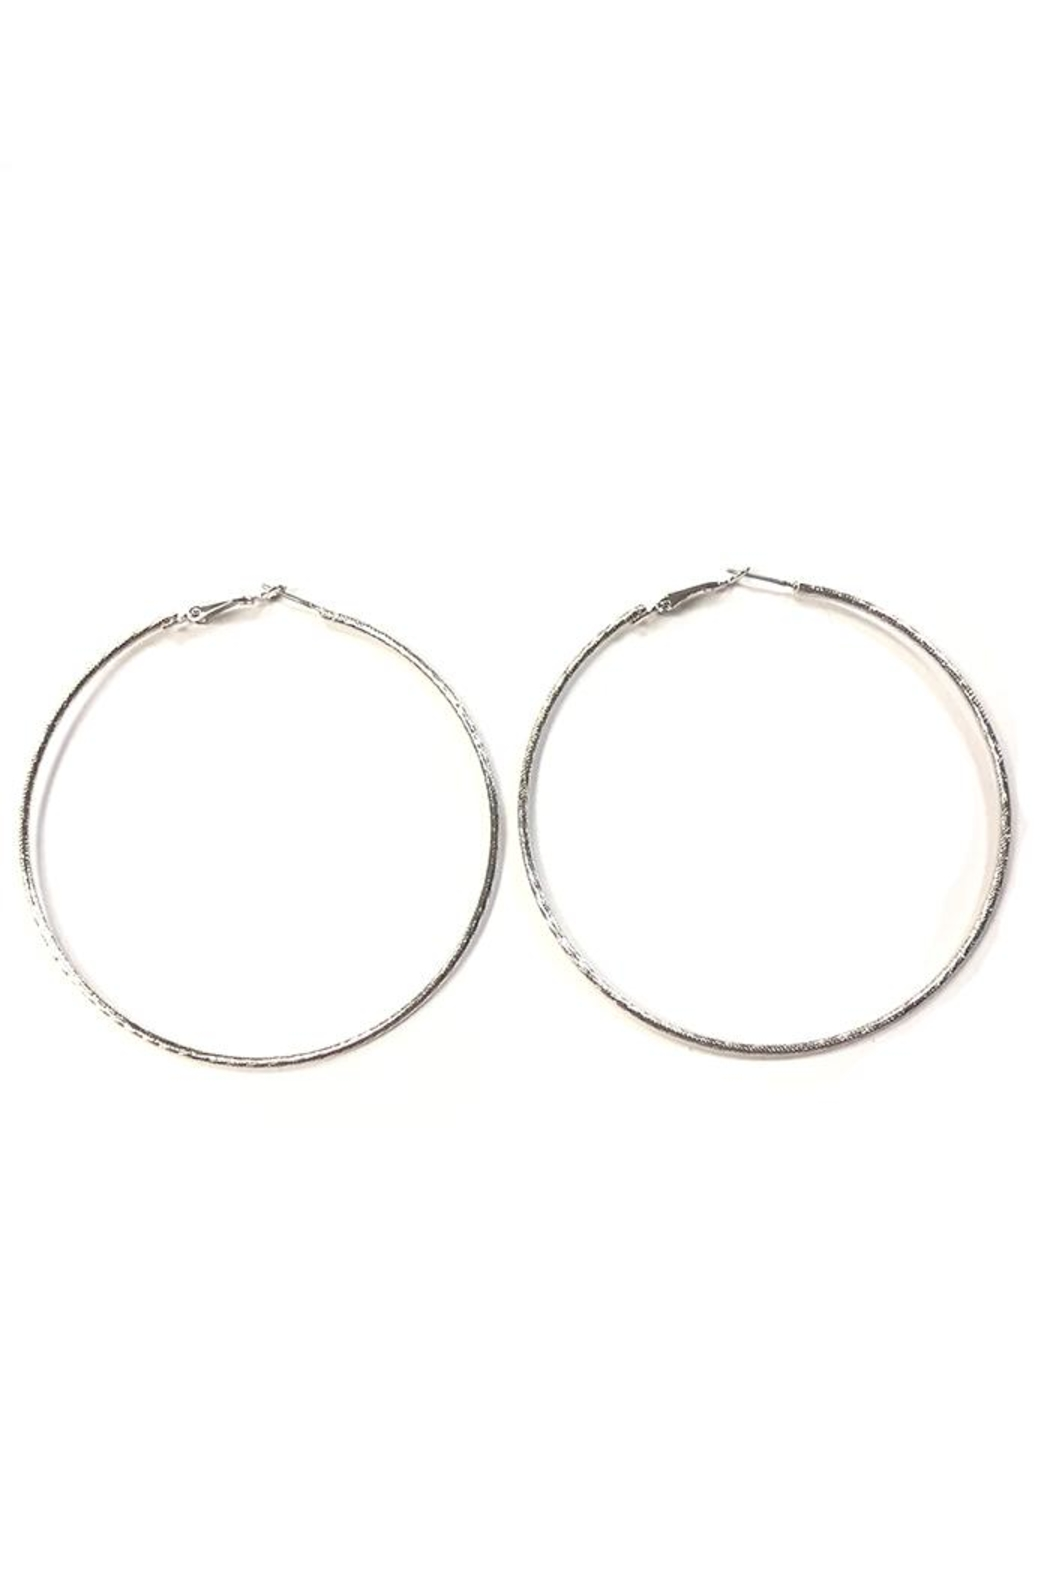 Wona Trading Large White-Gold Hoops - Main Image